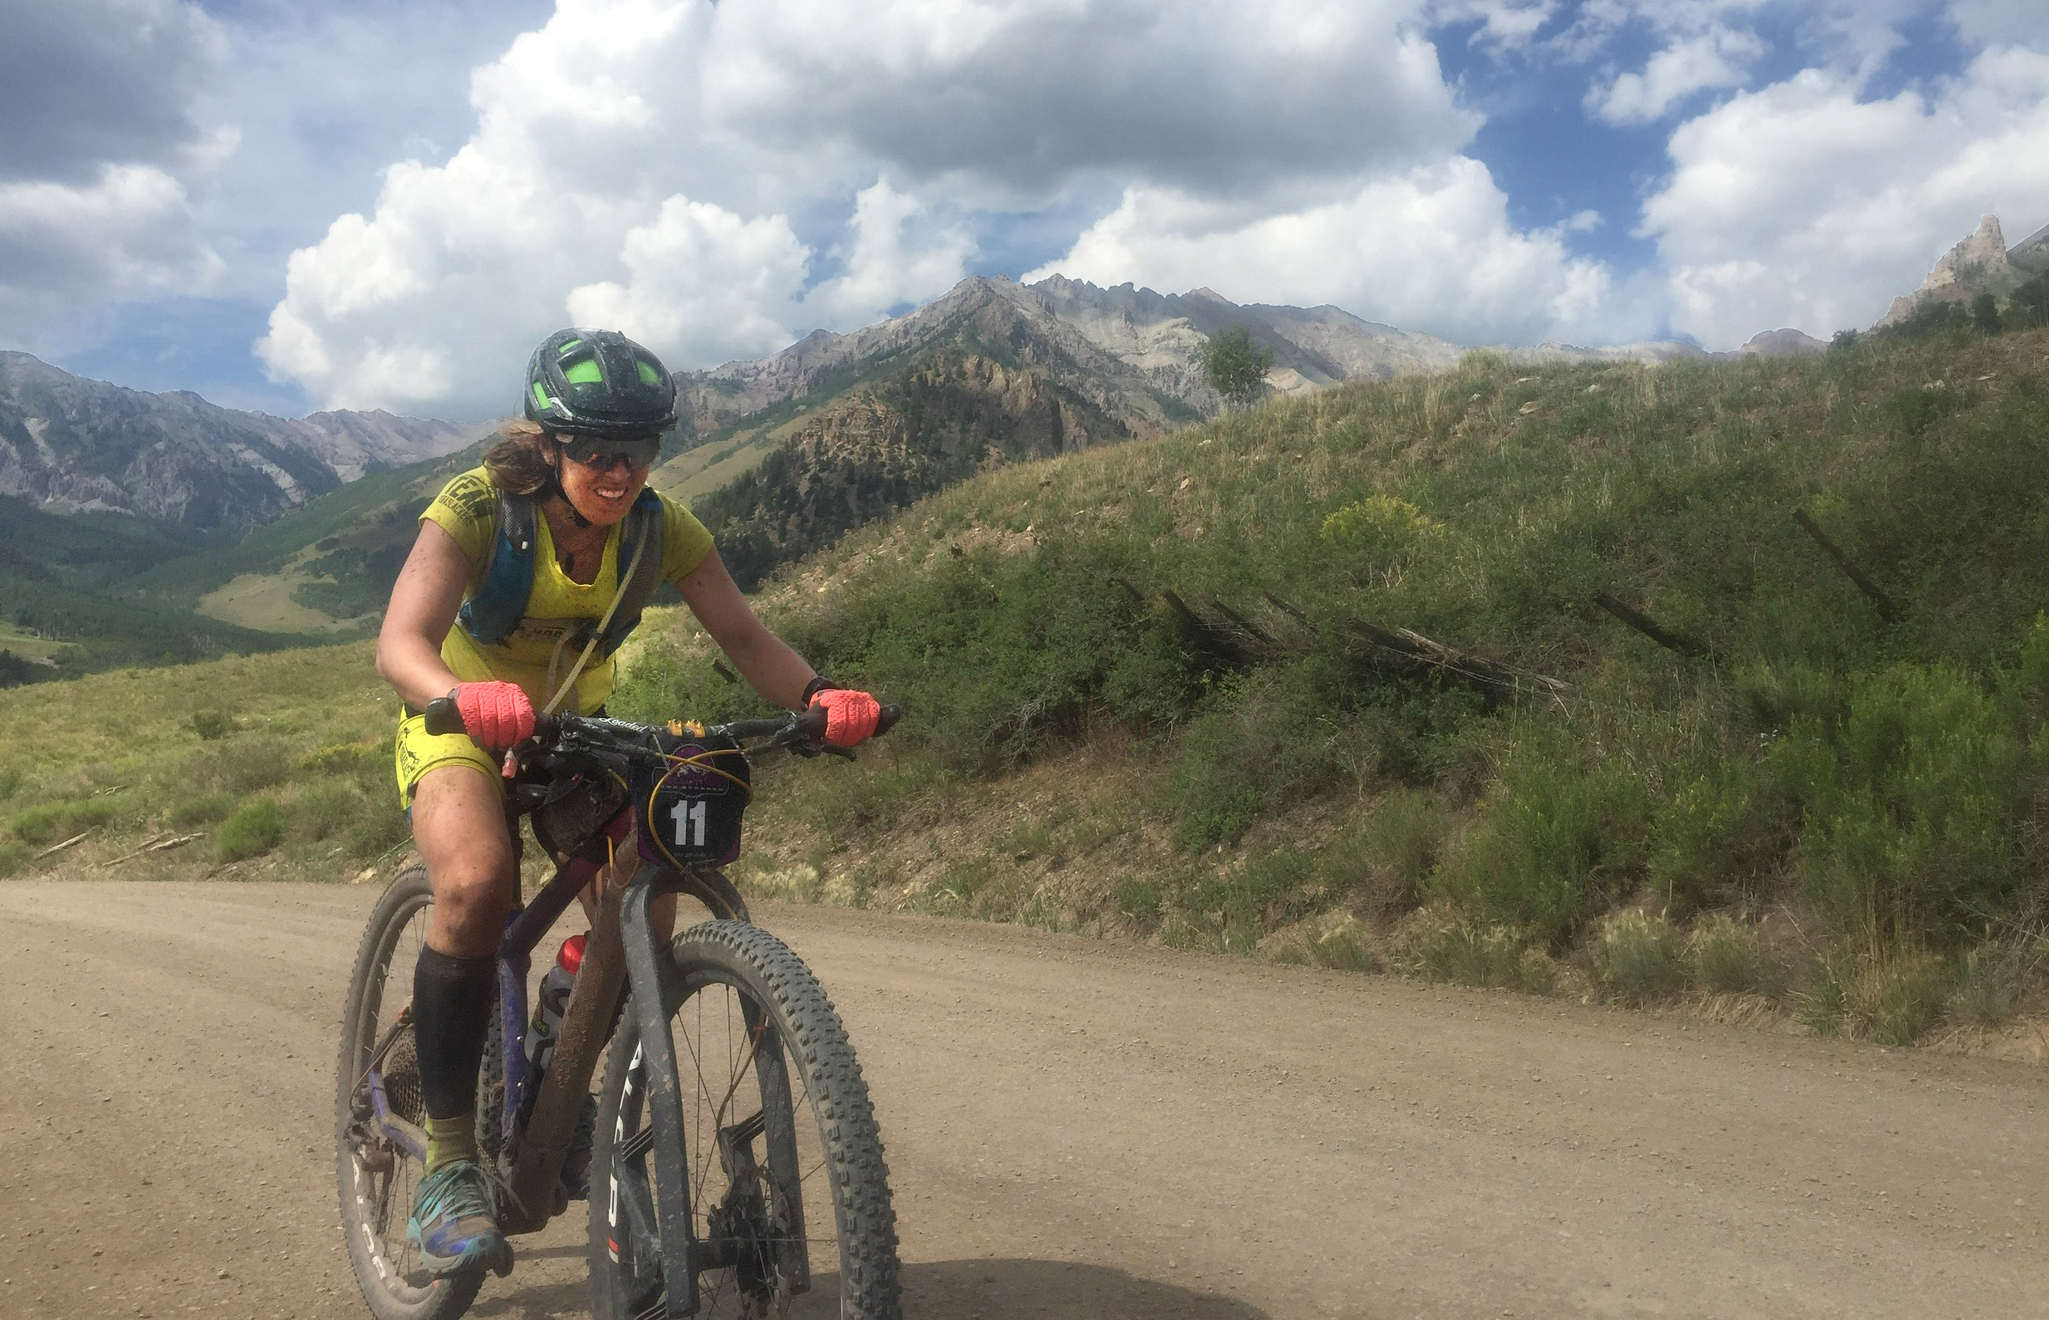 Chelsey Magness riding Telluride 100 mountain bike race